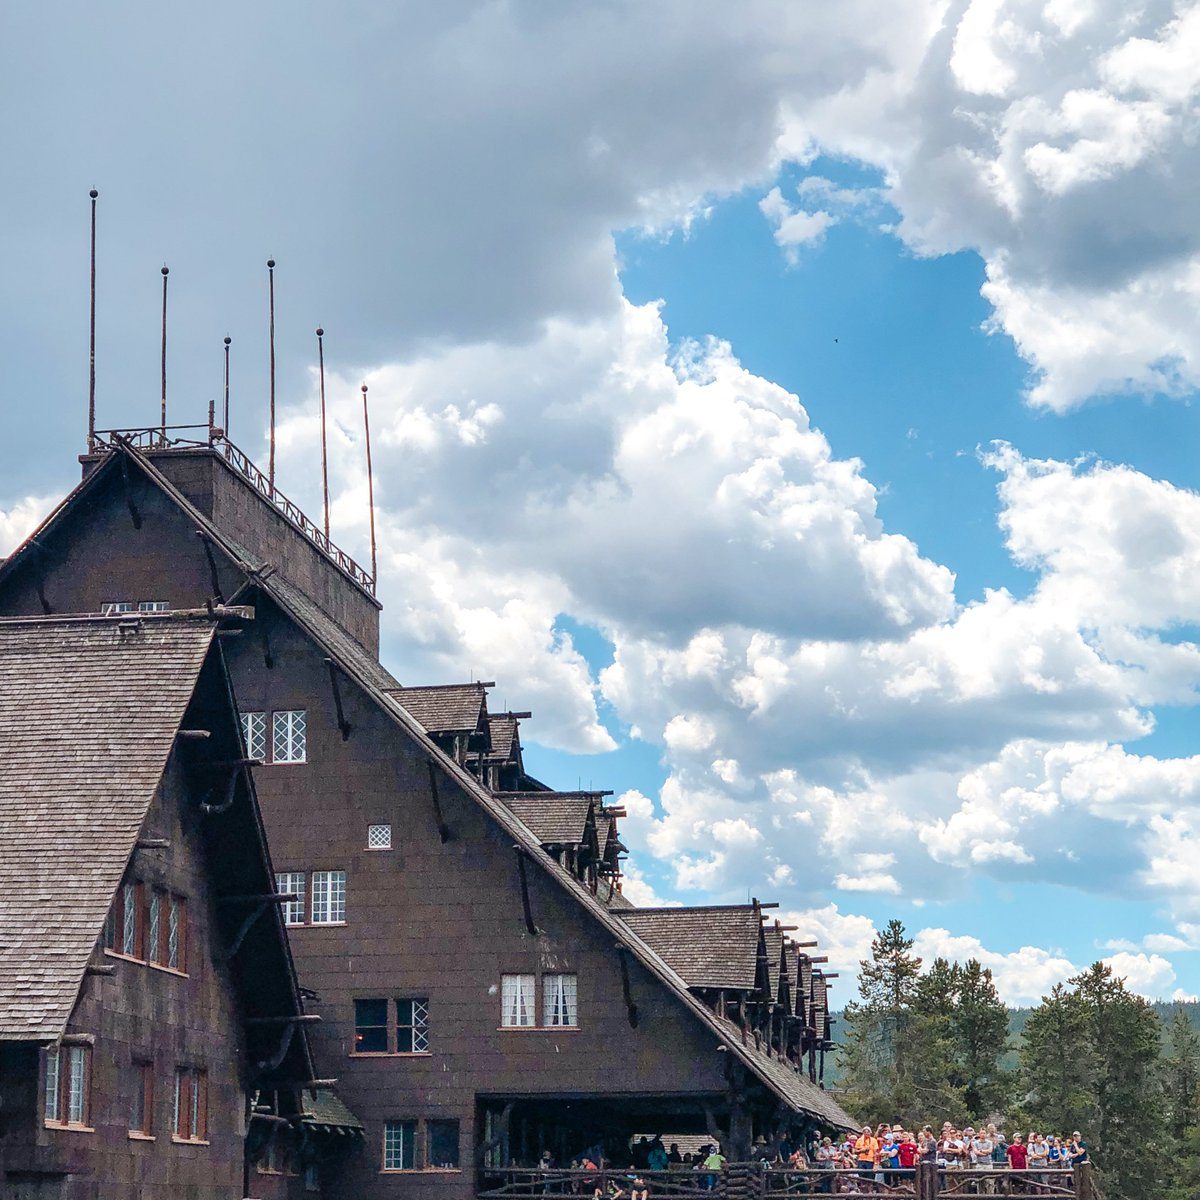 The Best Places in West Yellowstone: The Old Faithful Inn  https://t.co/LkeQwppgcT https://t.co/aFiok2TWjX